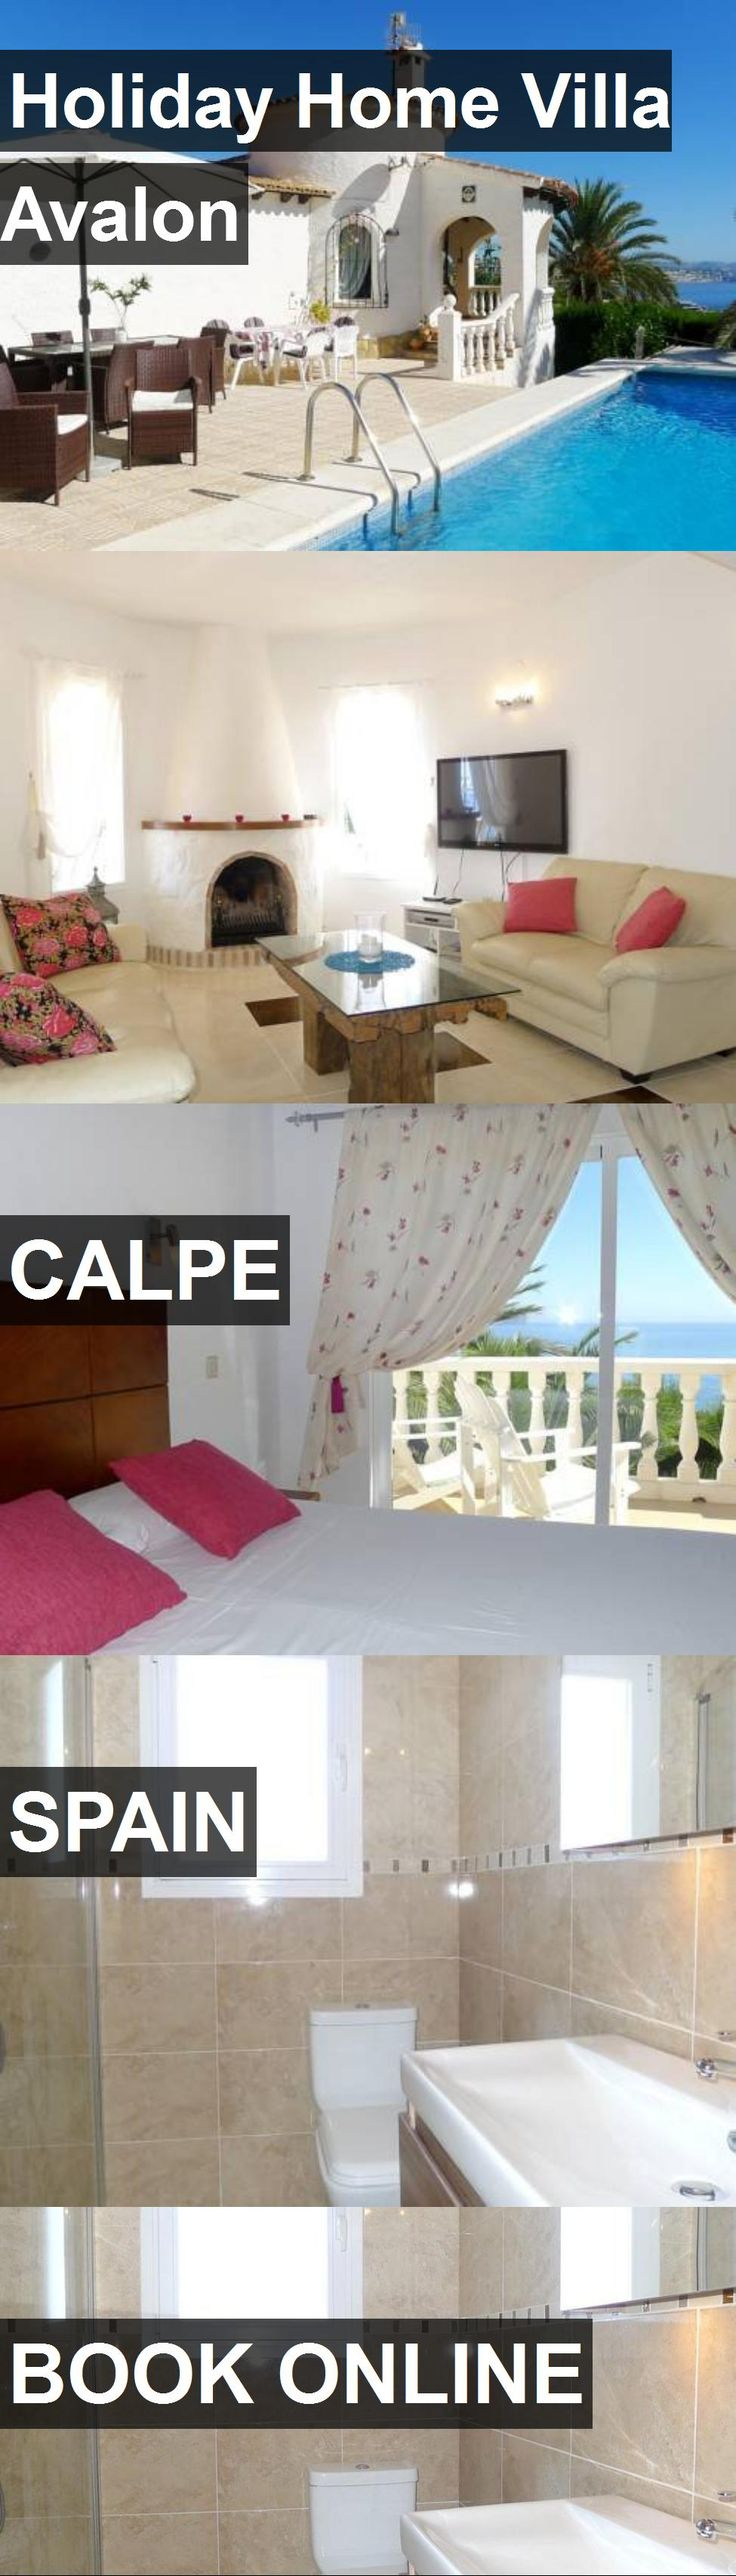 Hotel Holiday Home Villa Avalon in Calpe, Spain. For more information, photos, reviews and best prices please follow the link. #Spain #Calpe #travel #vacation #hotel